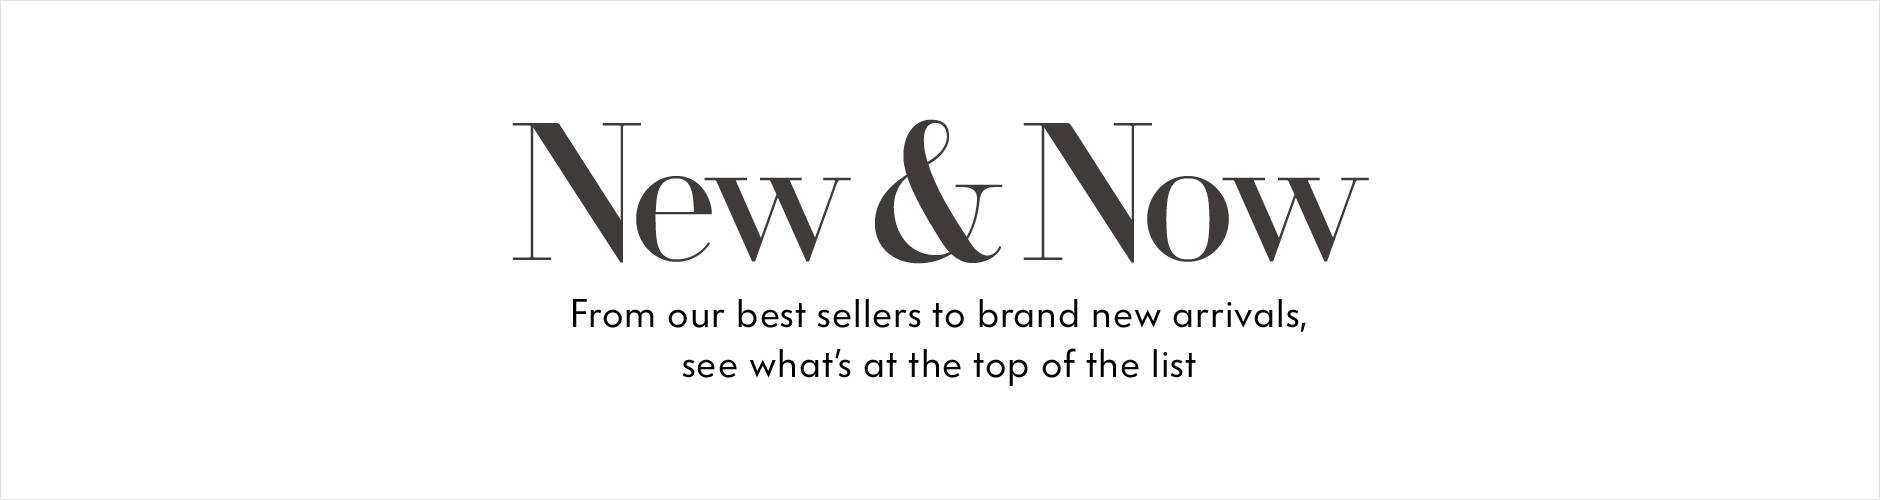 New & Now: From our best sellers to brand new arrivals, see what's at the top of the list